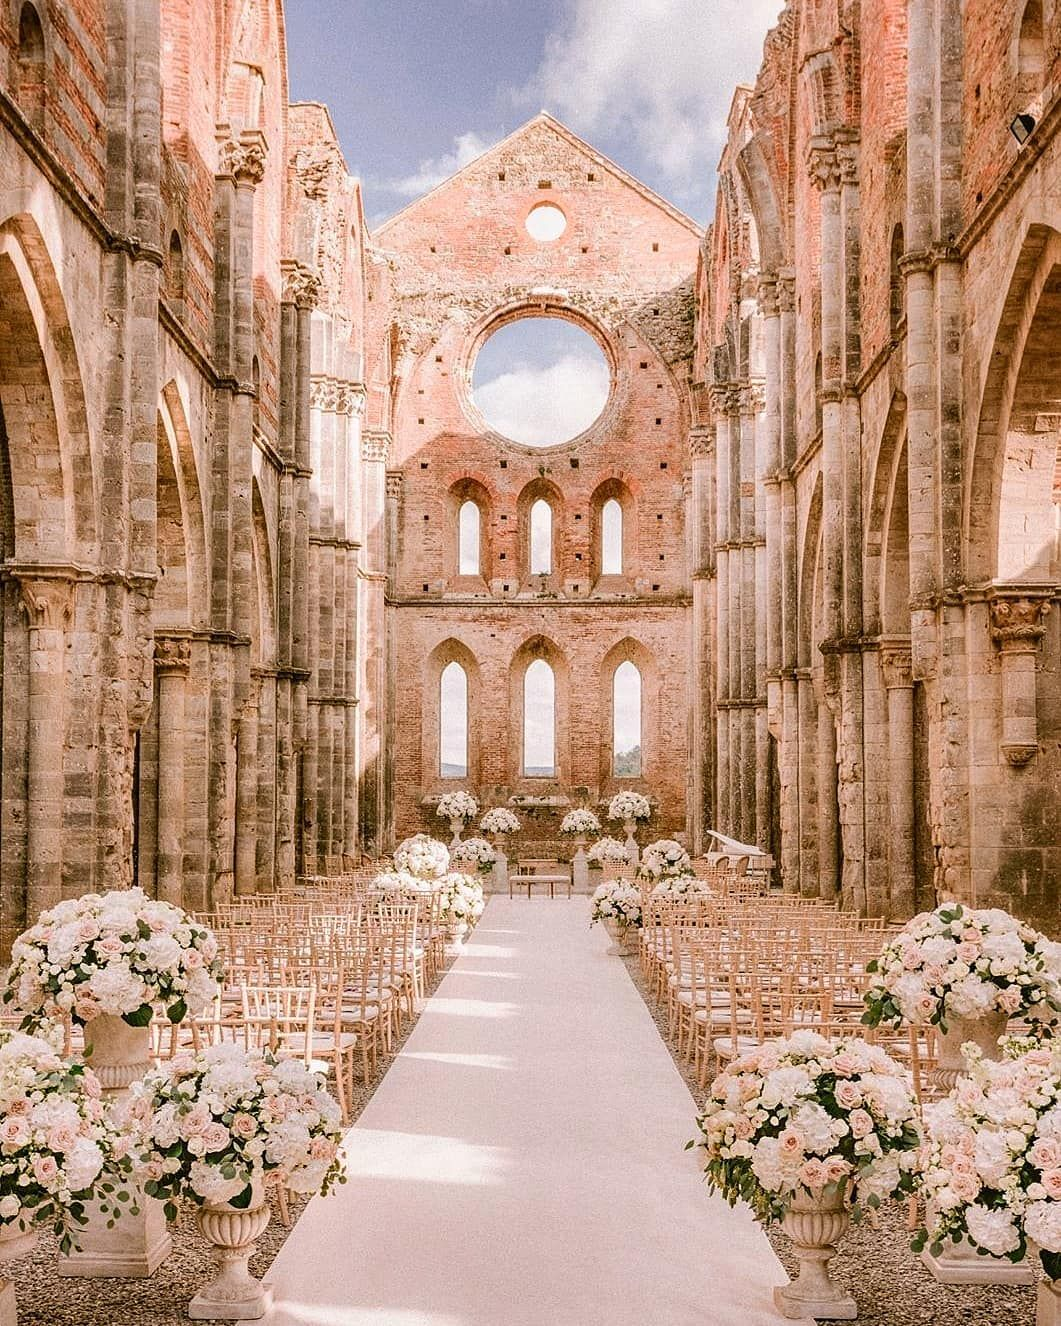 Lebanese Weddings On Instagram Now That S Completely Romantic And Dreamy The Abbey Of San Dream Wedding Venues Stunning Wedding Venues Italy Wedding Venues